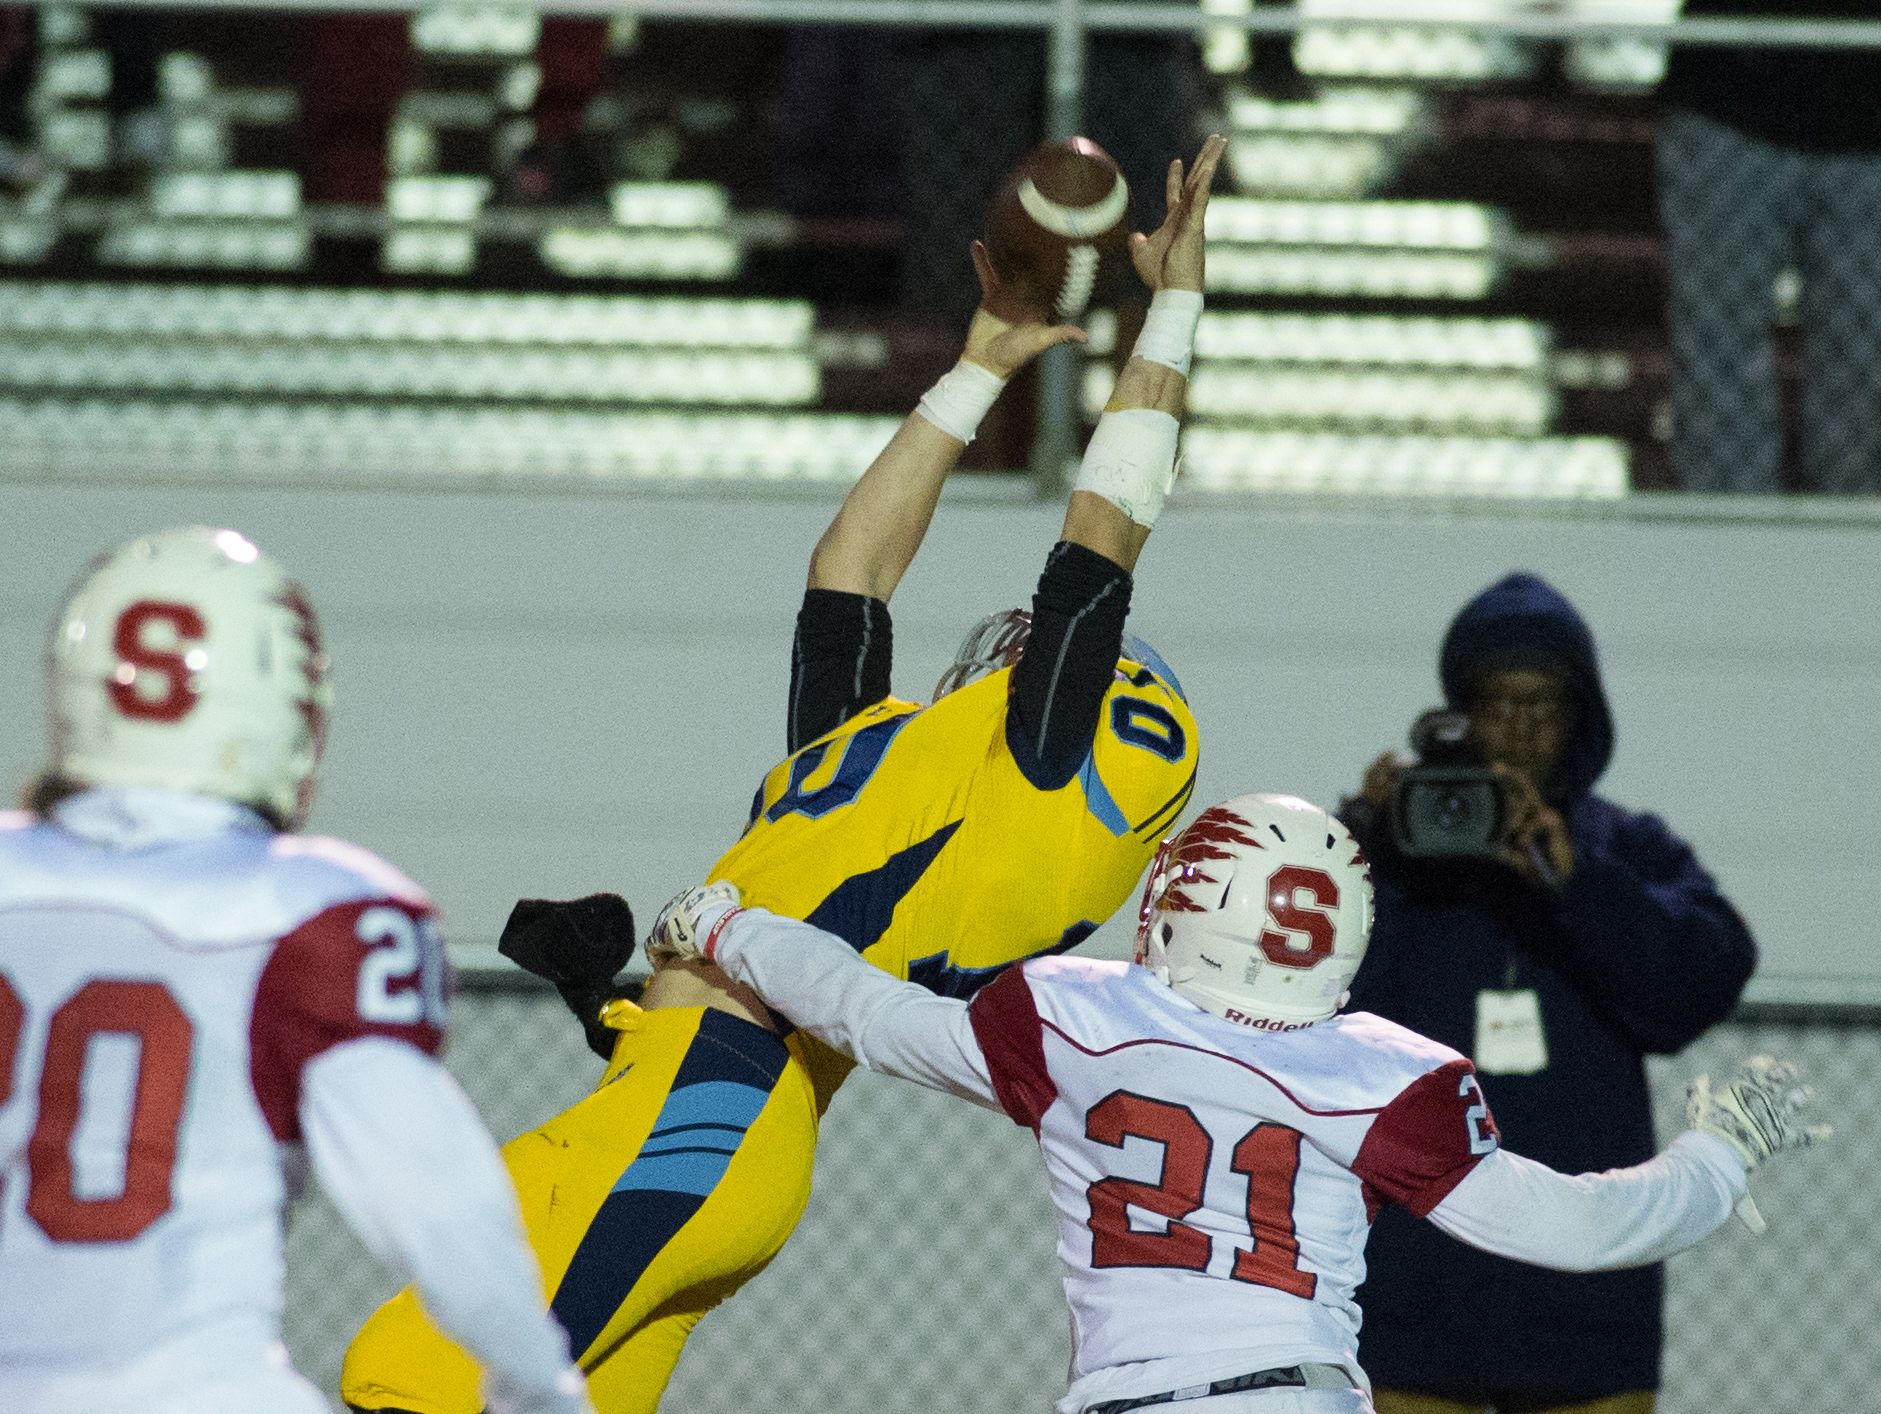 Cape Henlopen's Zachary Dale (10) reaches for the ball during a pass to the sideline in their home game against Smyrna.